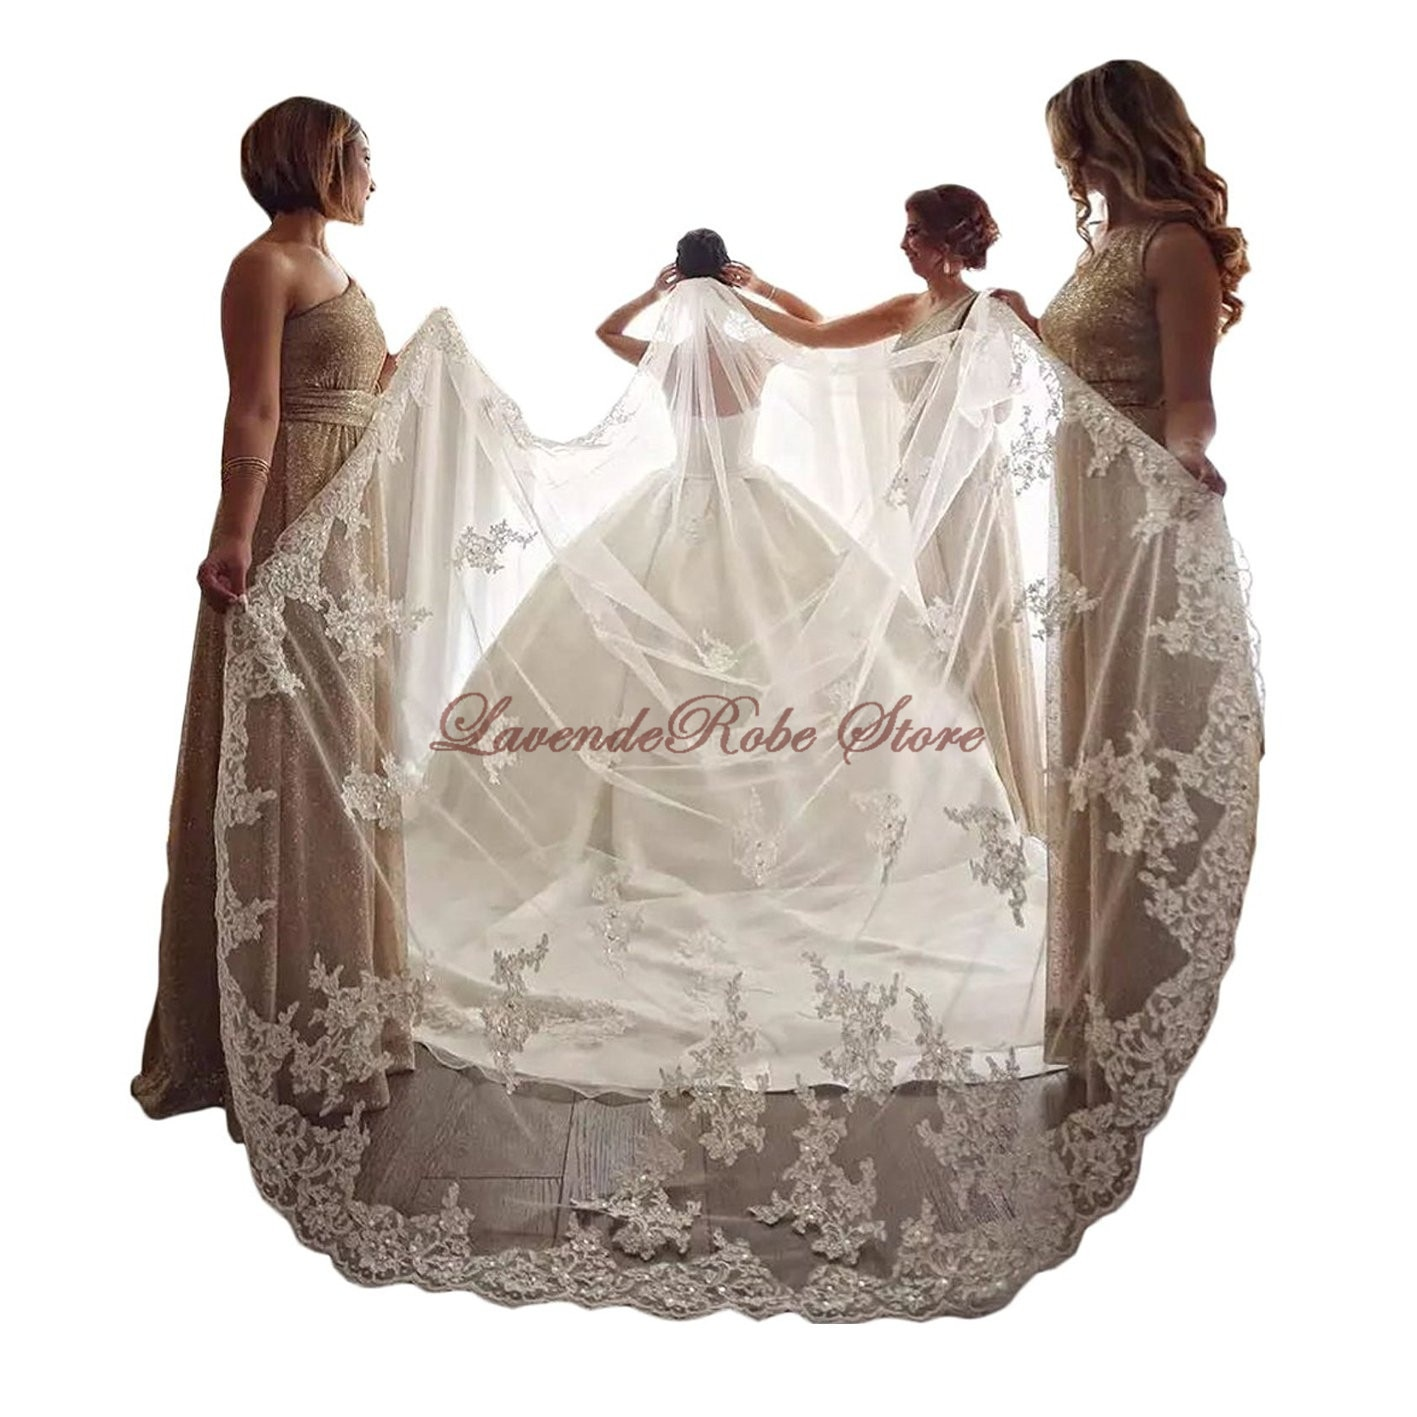 Luxury Bridal Veils Bling Tulle Cathedral Length White Ivory Lace Applique Beads Crystal Sequins Wedding Accessories